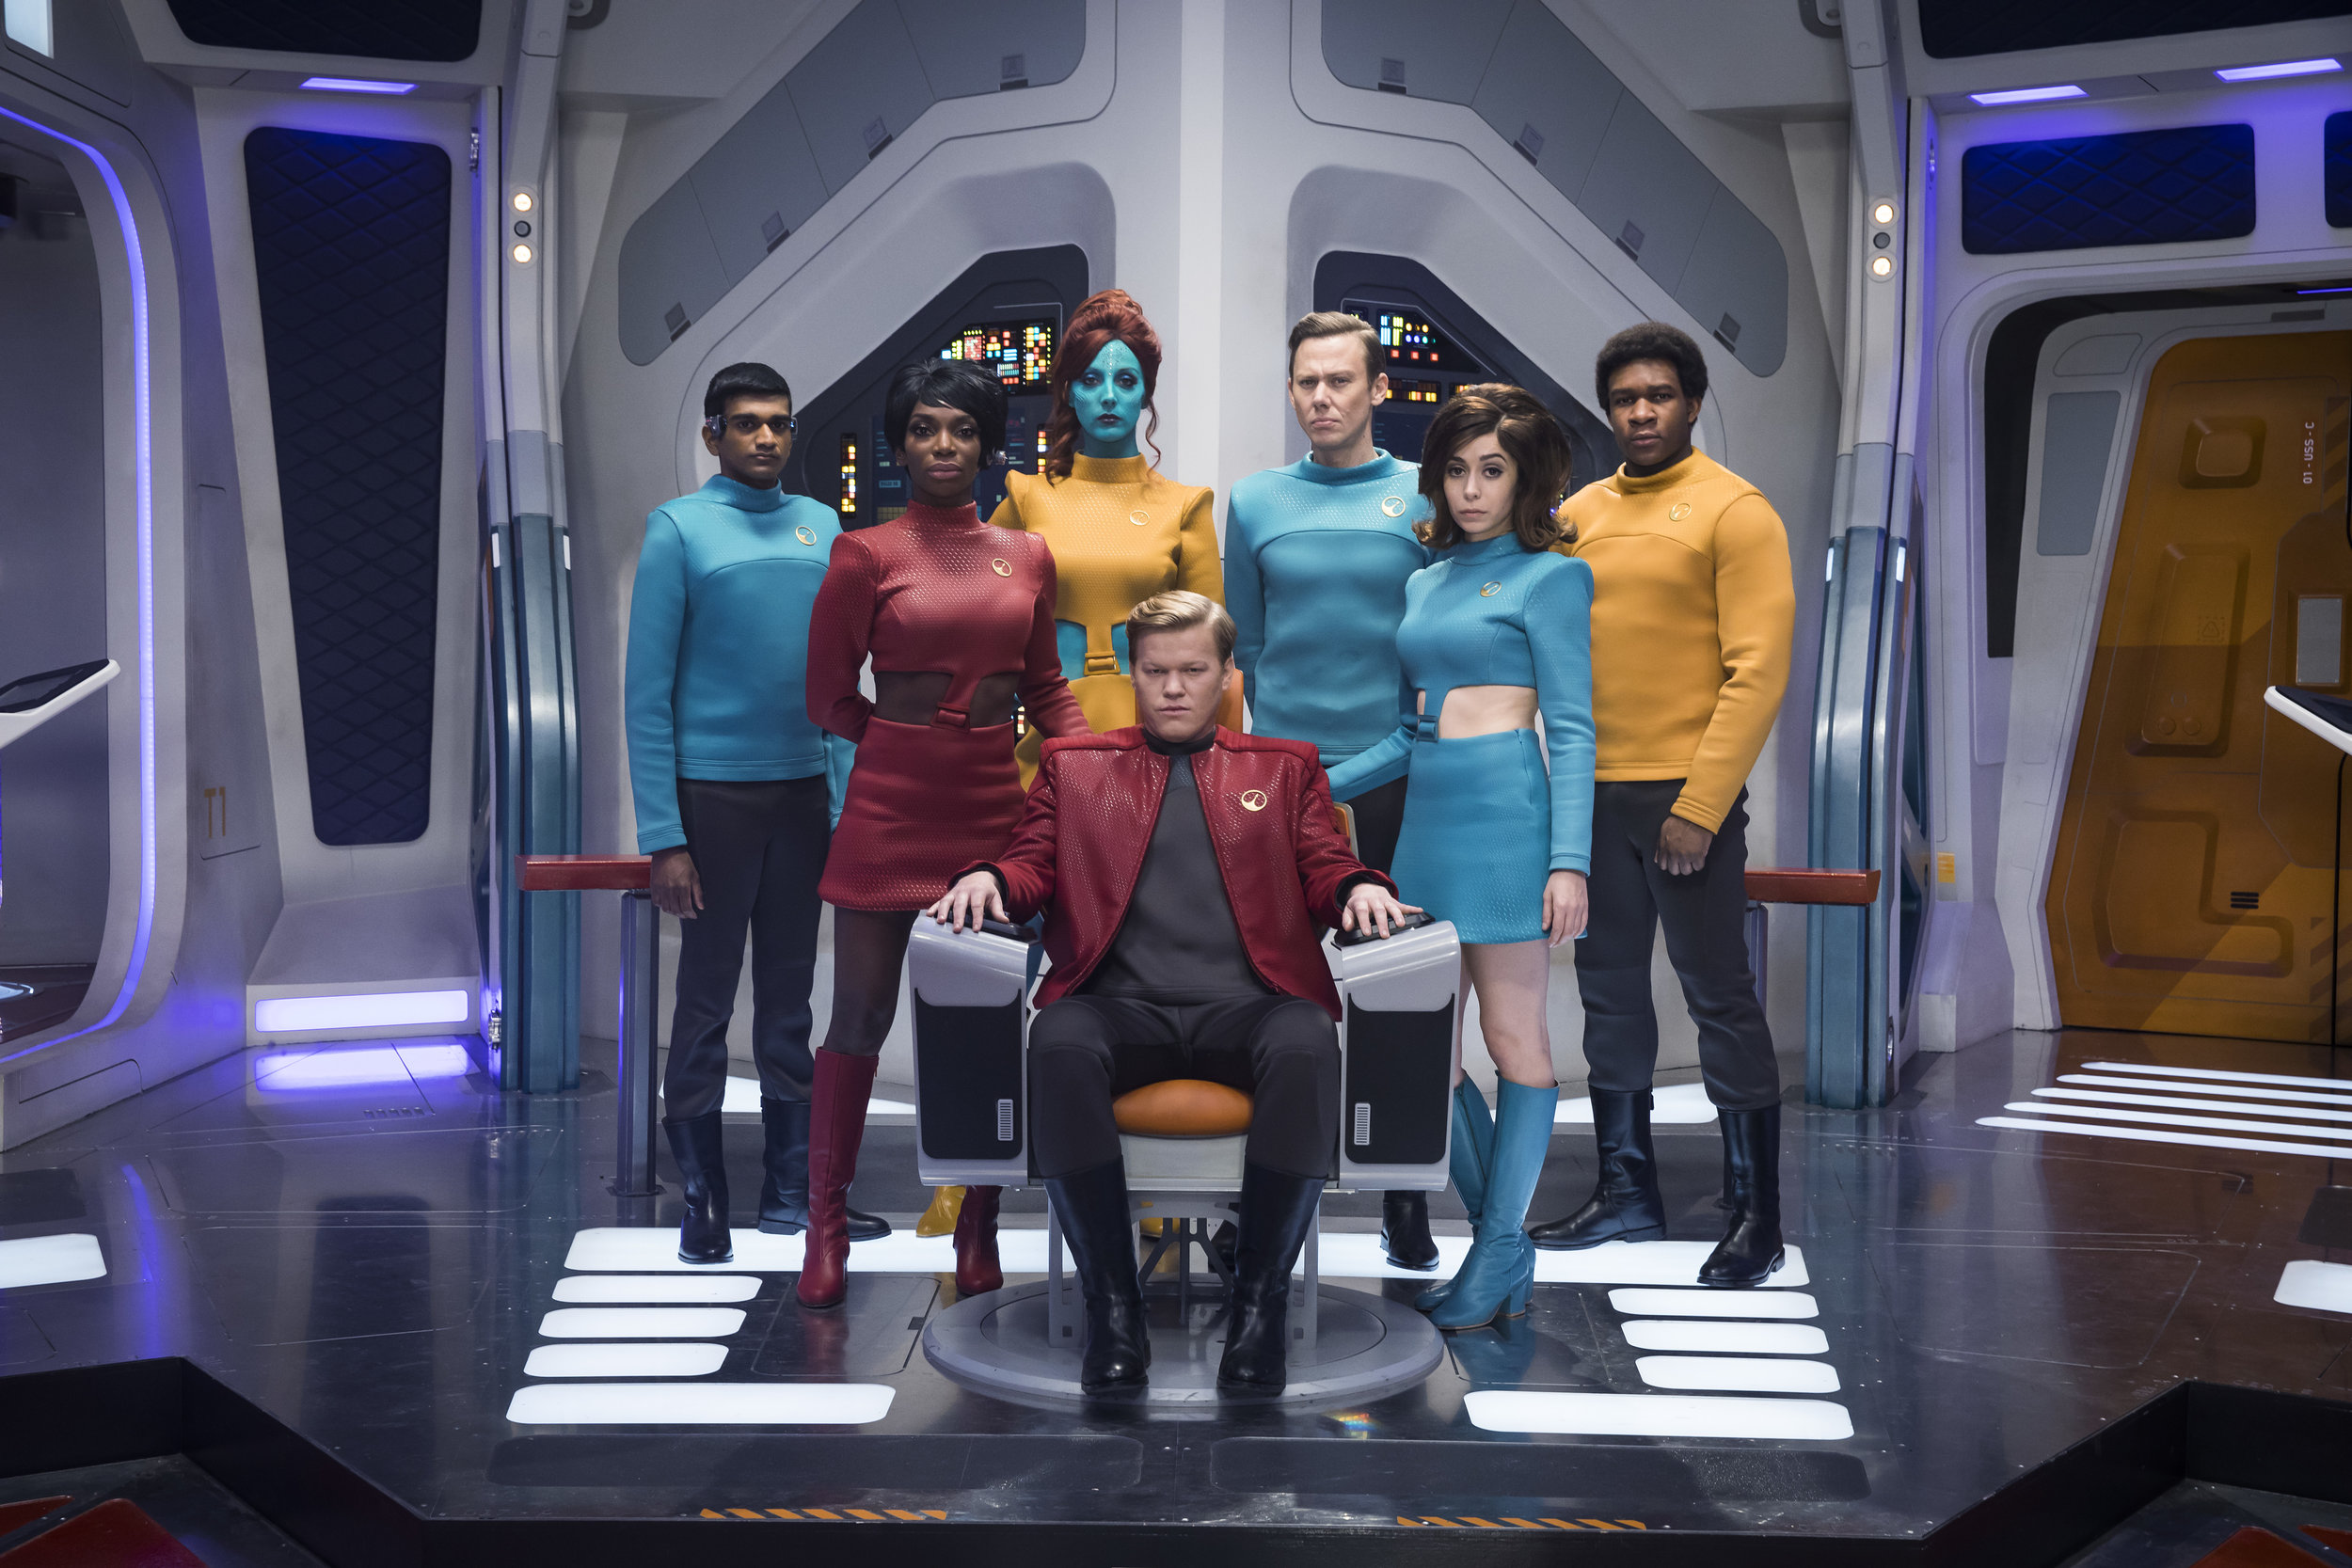 U.S.S. Callister  is a standout among the new Black Mirror episodes released this week. (Netflix)